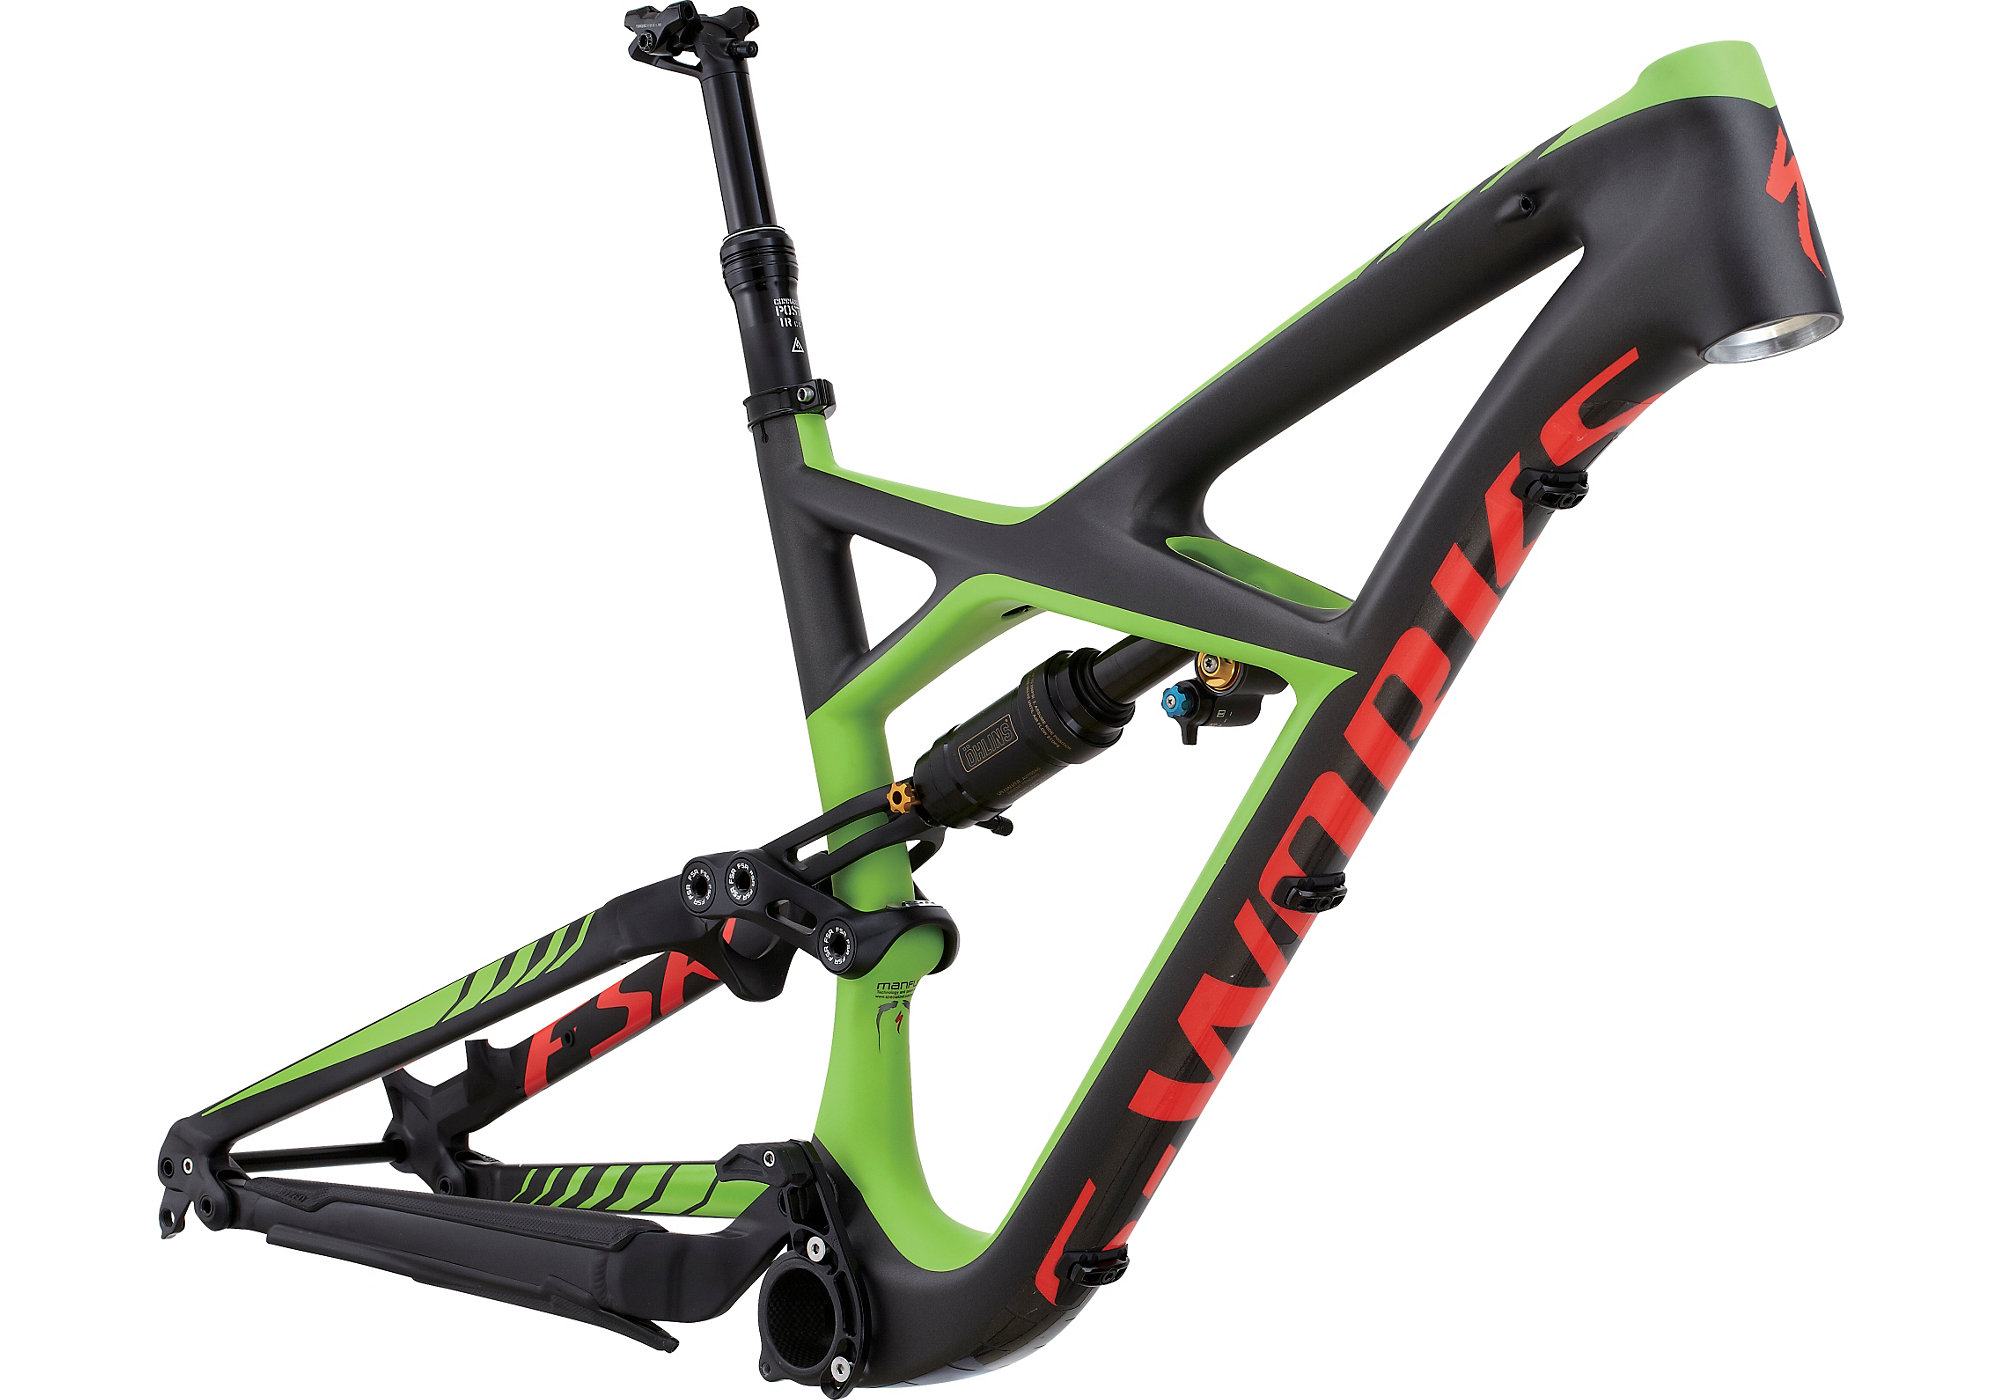 2016 Specialized S-WORKS ENDURO 650B FRAME - Specialized Concept Store